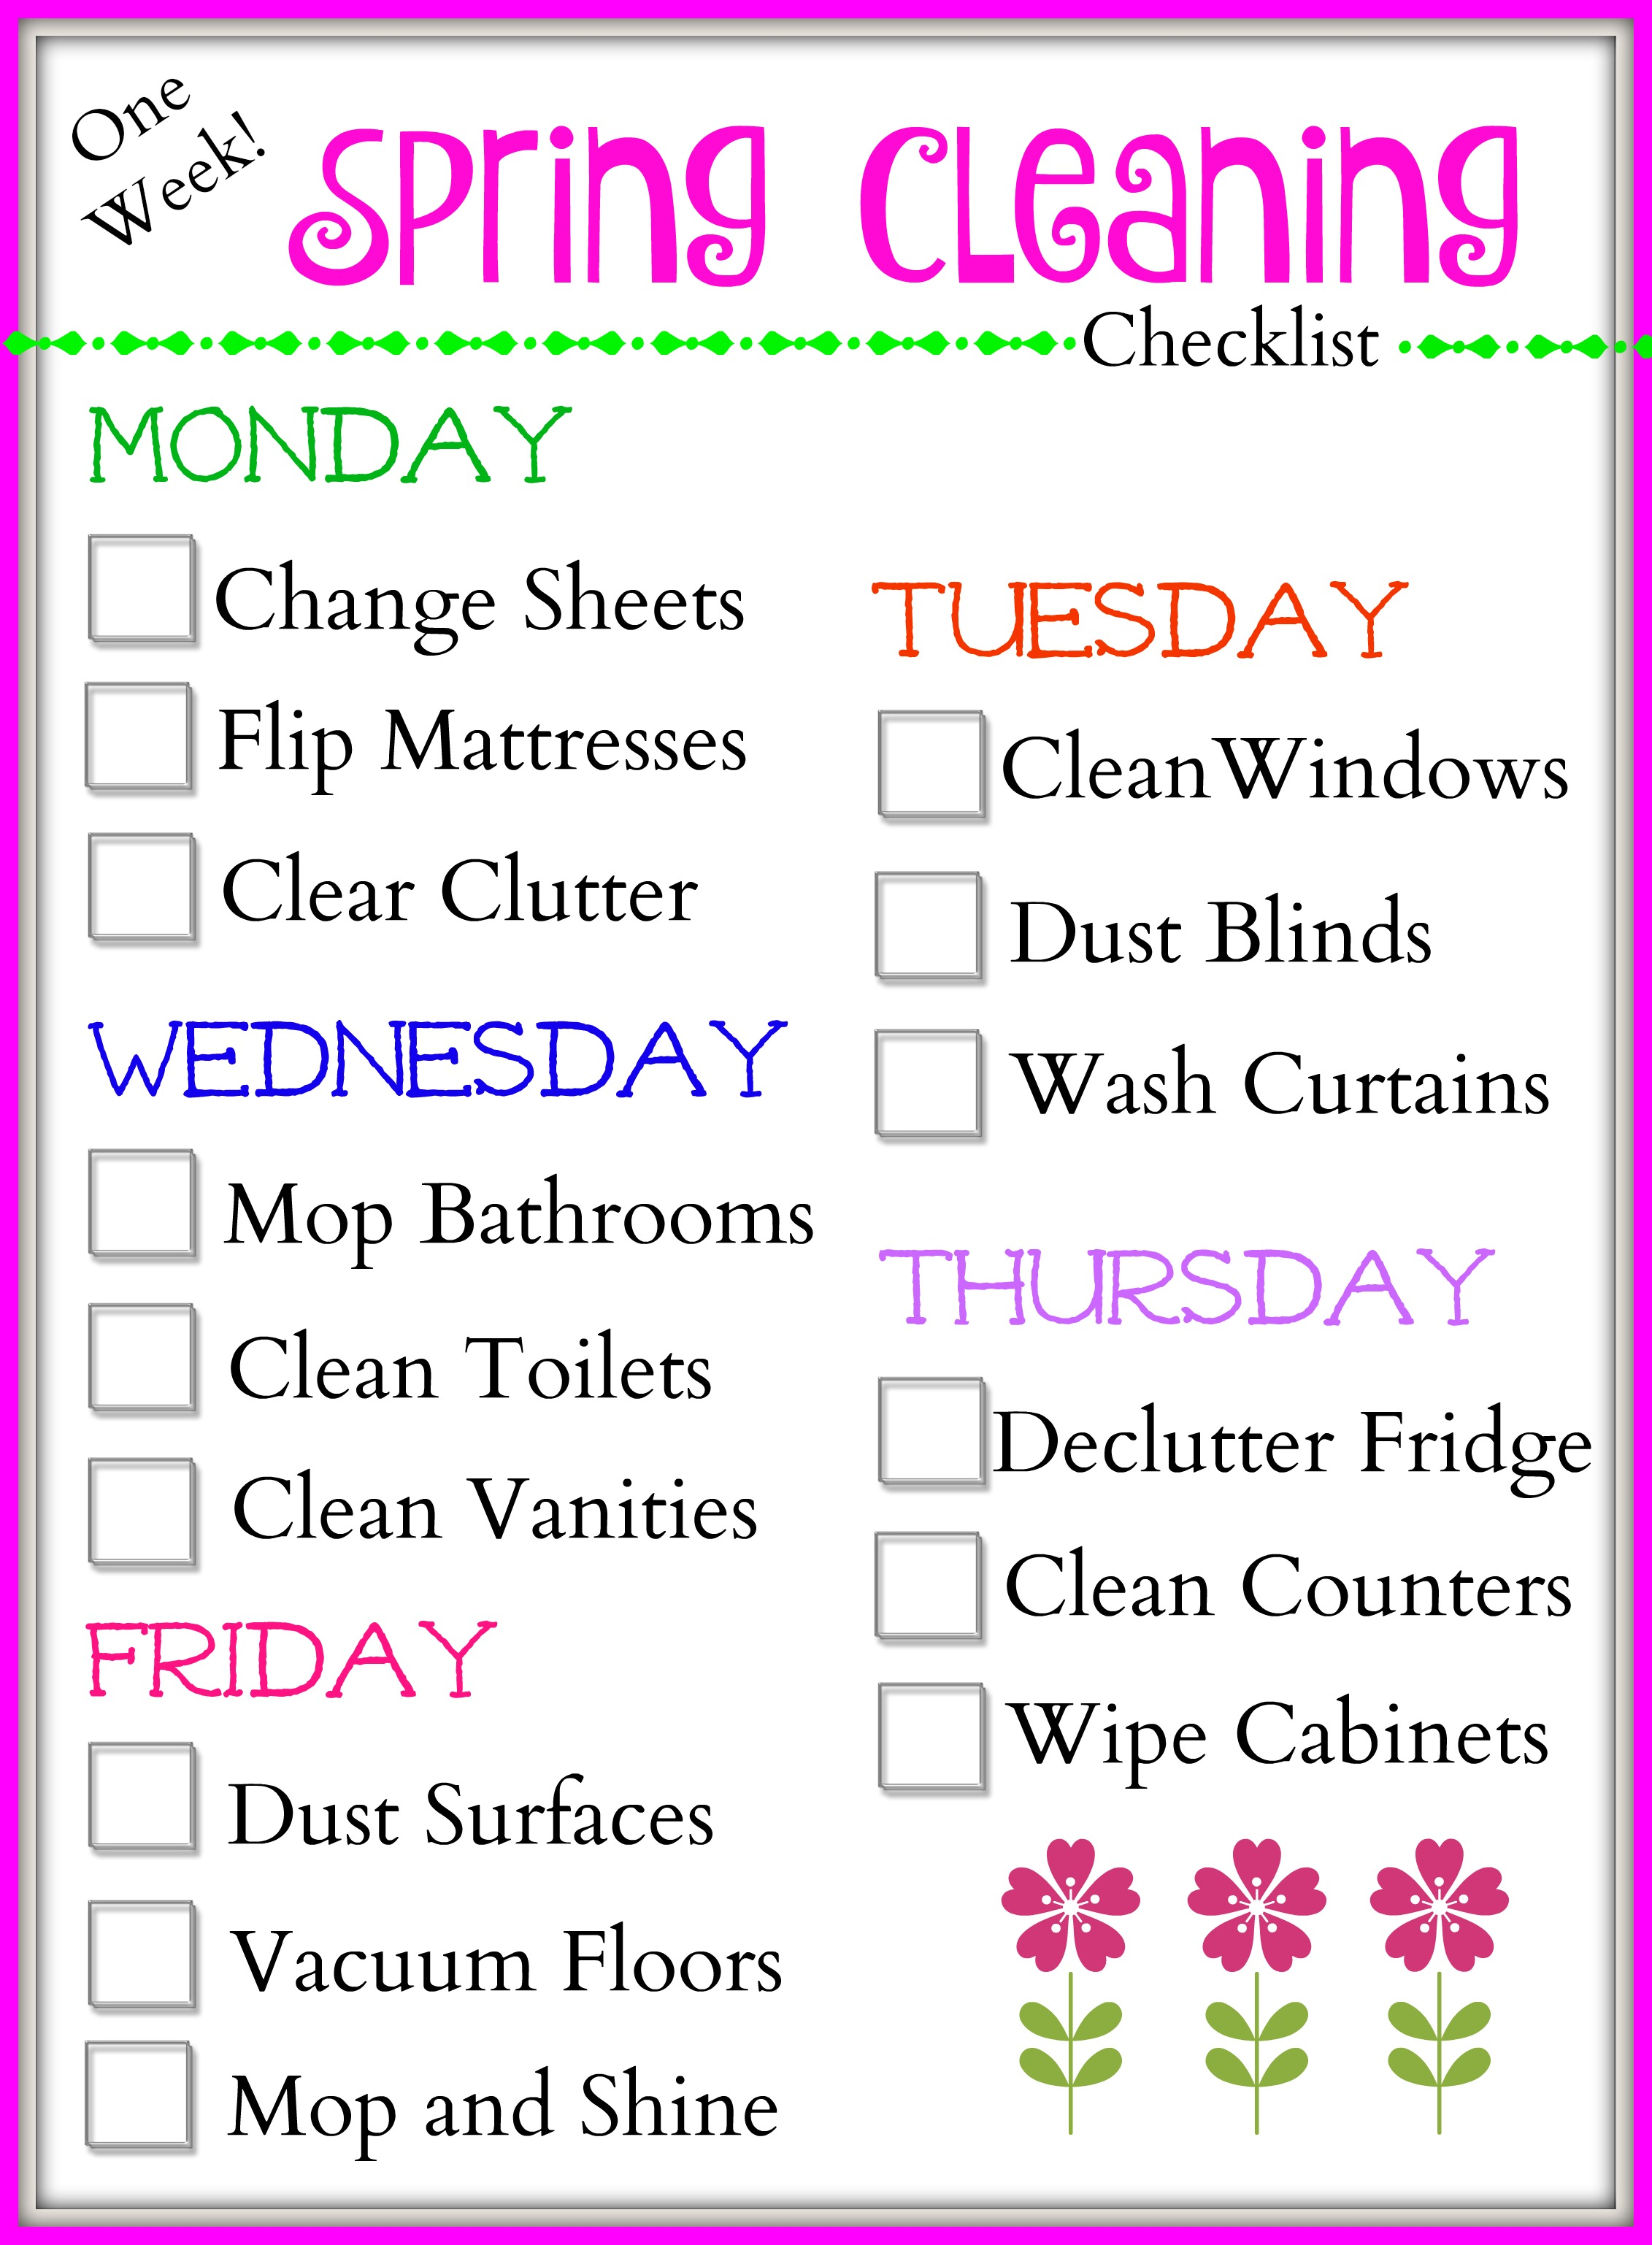 Spring Cleaning List Tips For Cleaning Quickly & A Spring Cleaning Checklist  The